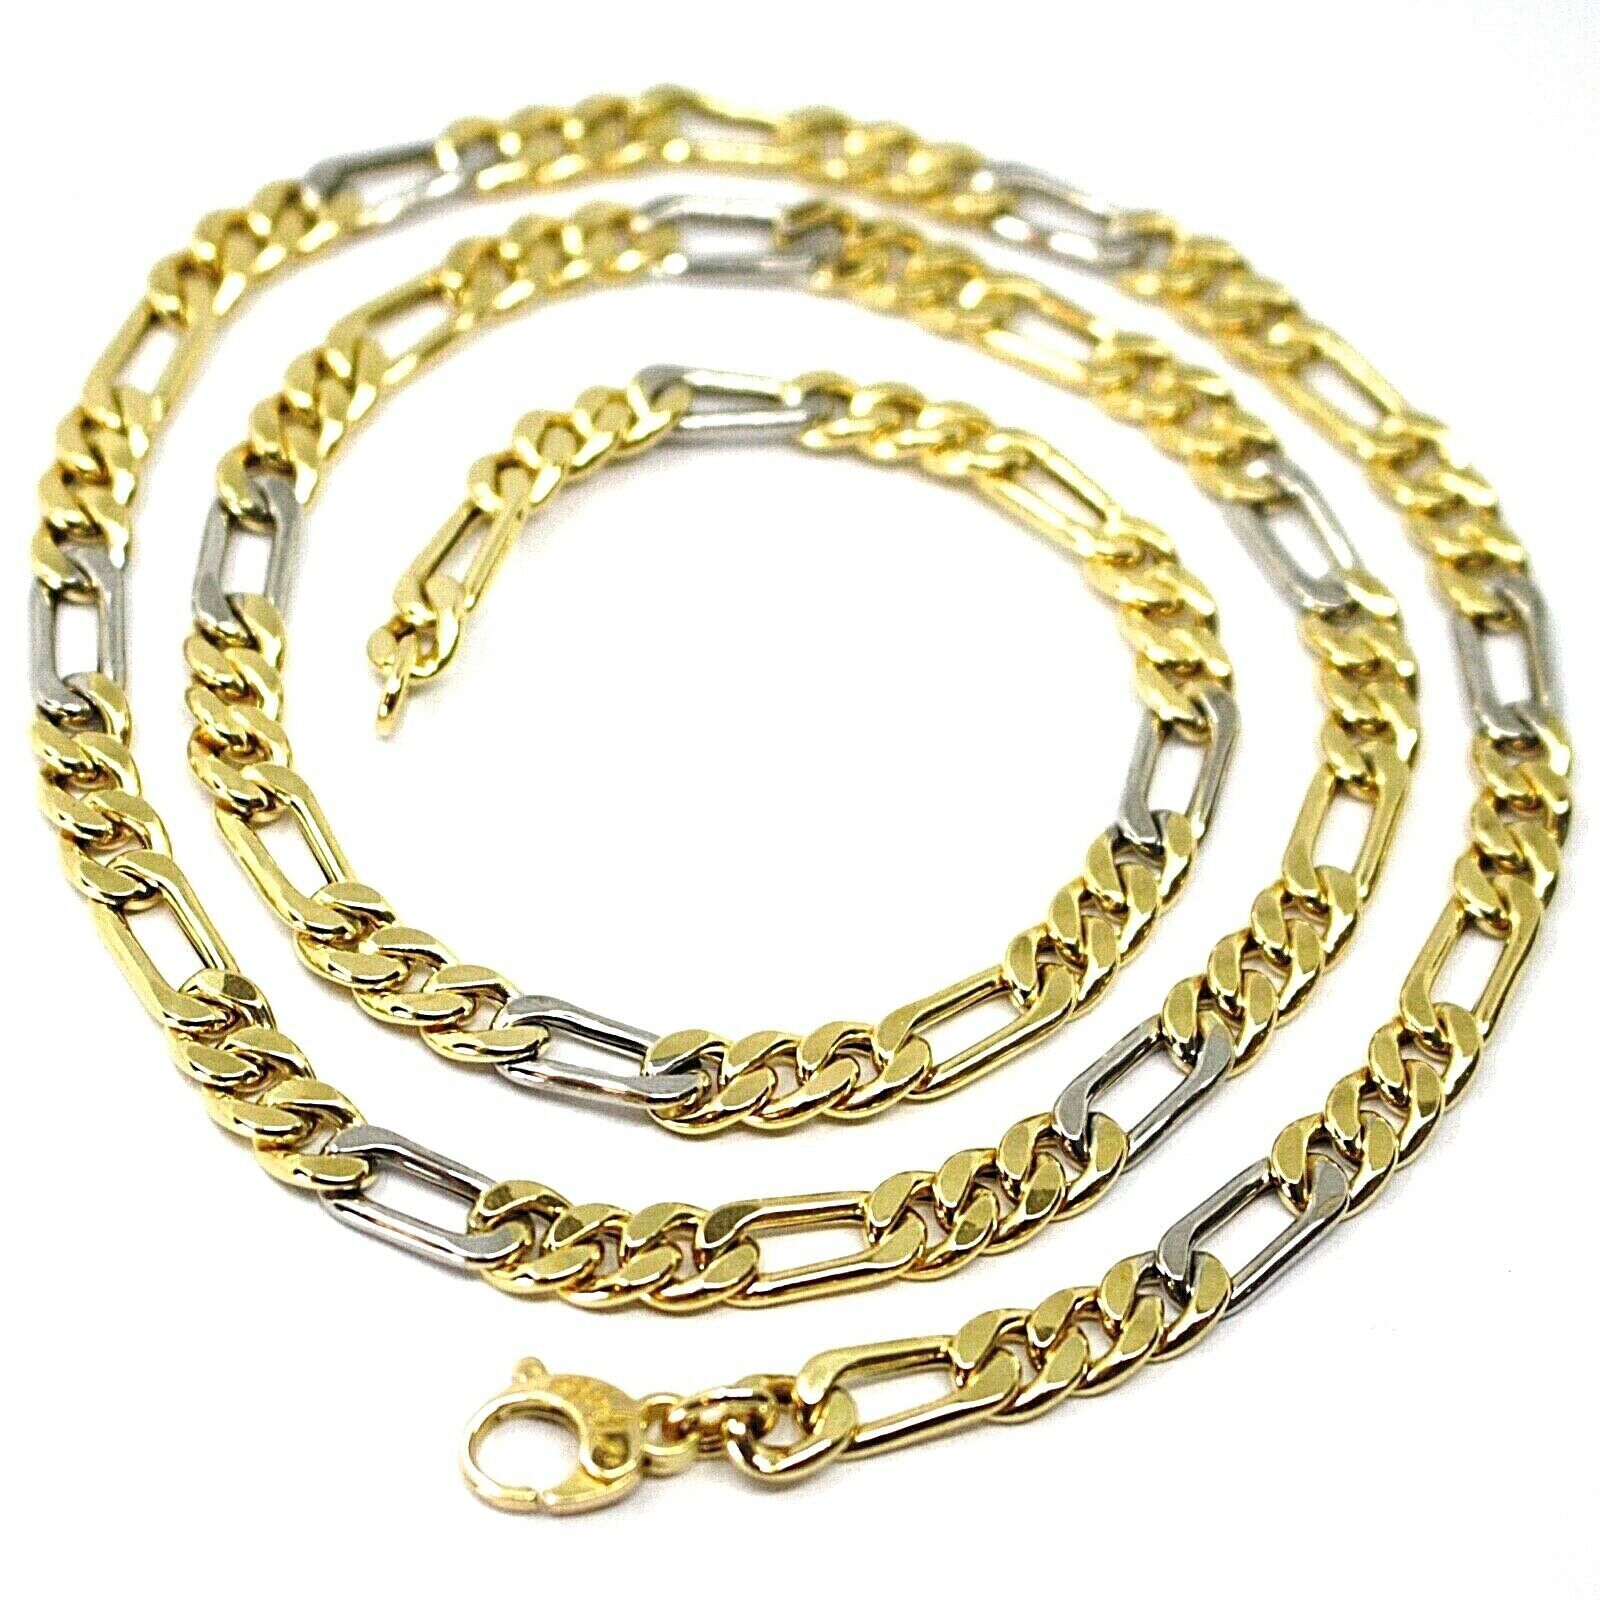 18K YELLOW WHITE GOLD CHAIN BIG 6 MM ROUNDED FIGARO GOURMETTE ALTERNATE 3+1, 20""